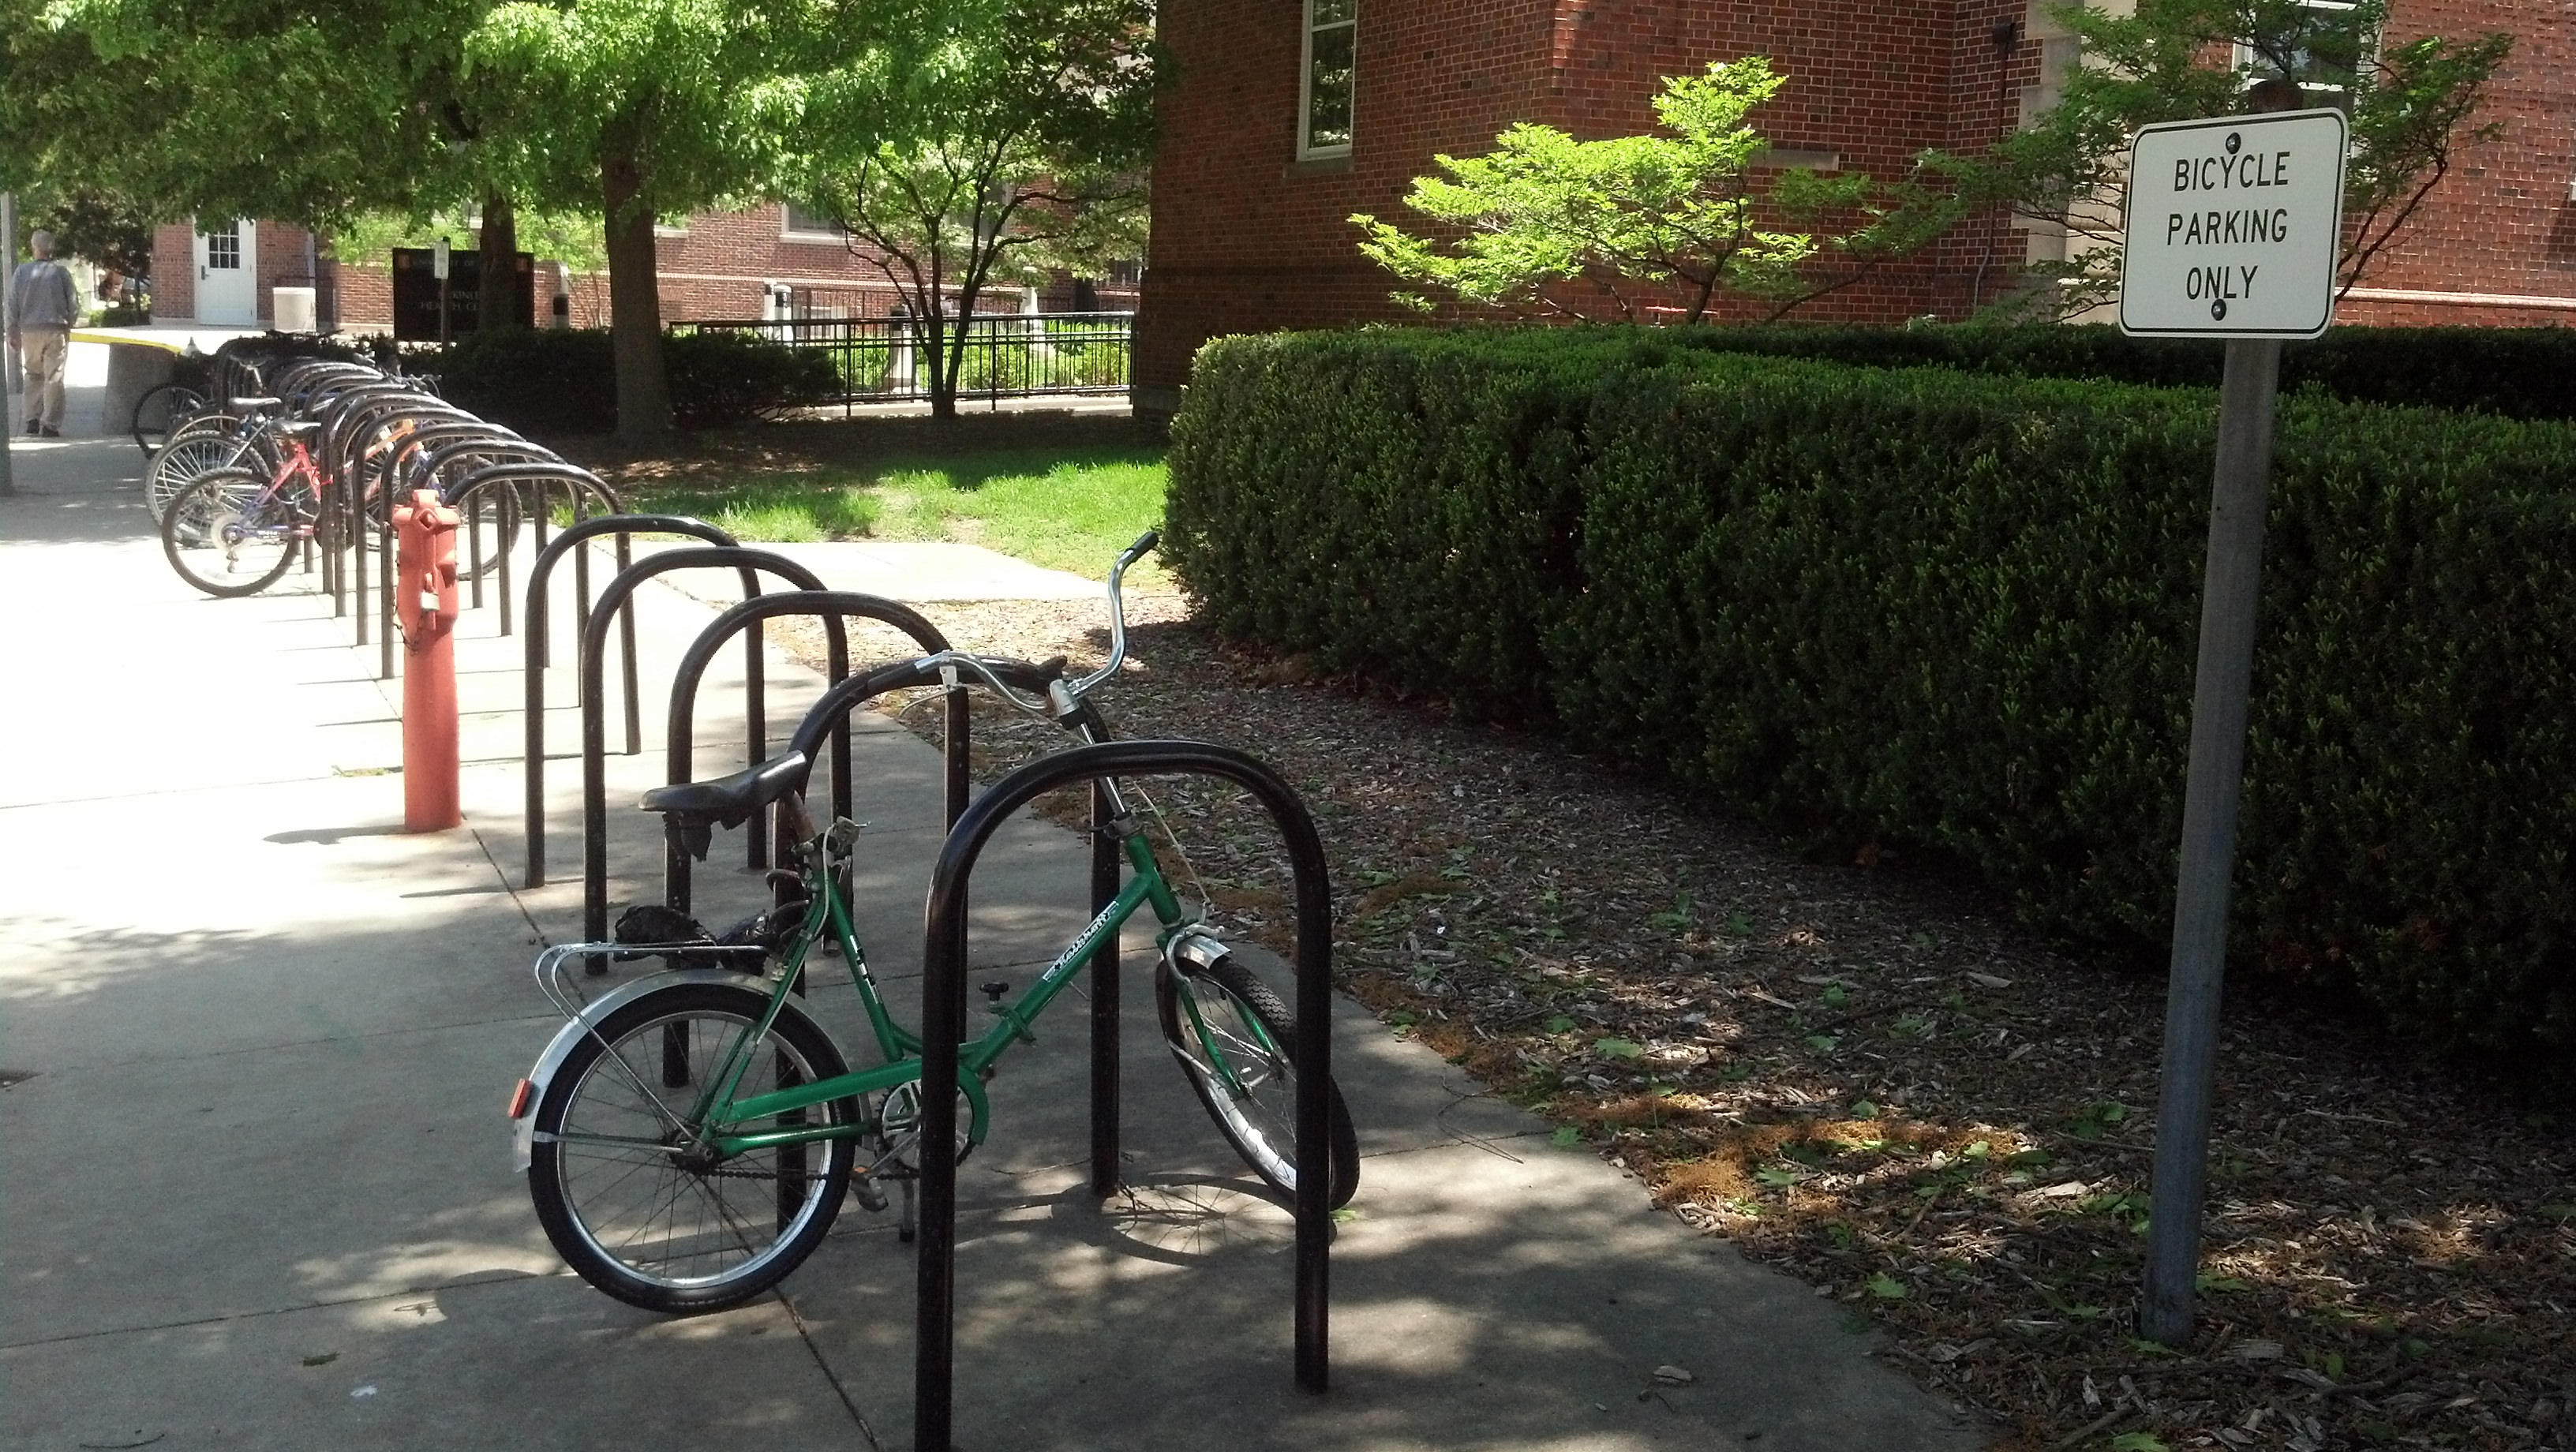 Mckinley bike parking